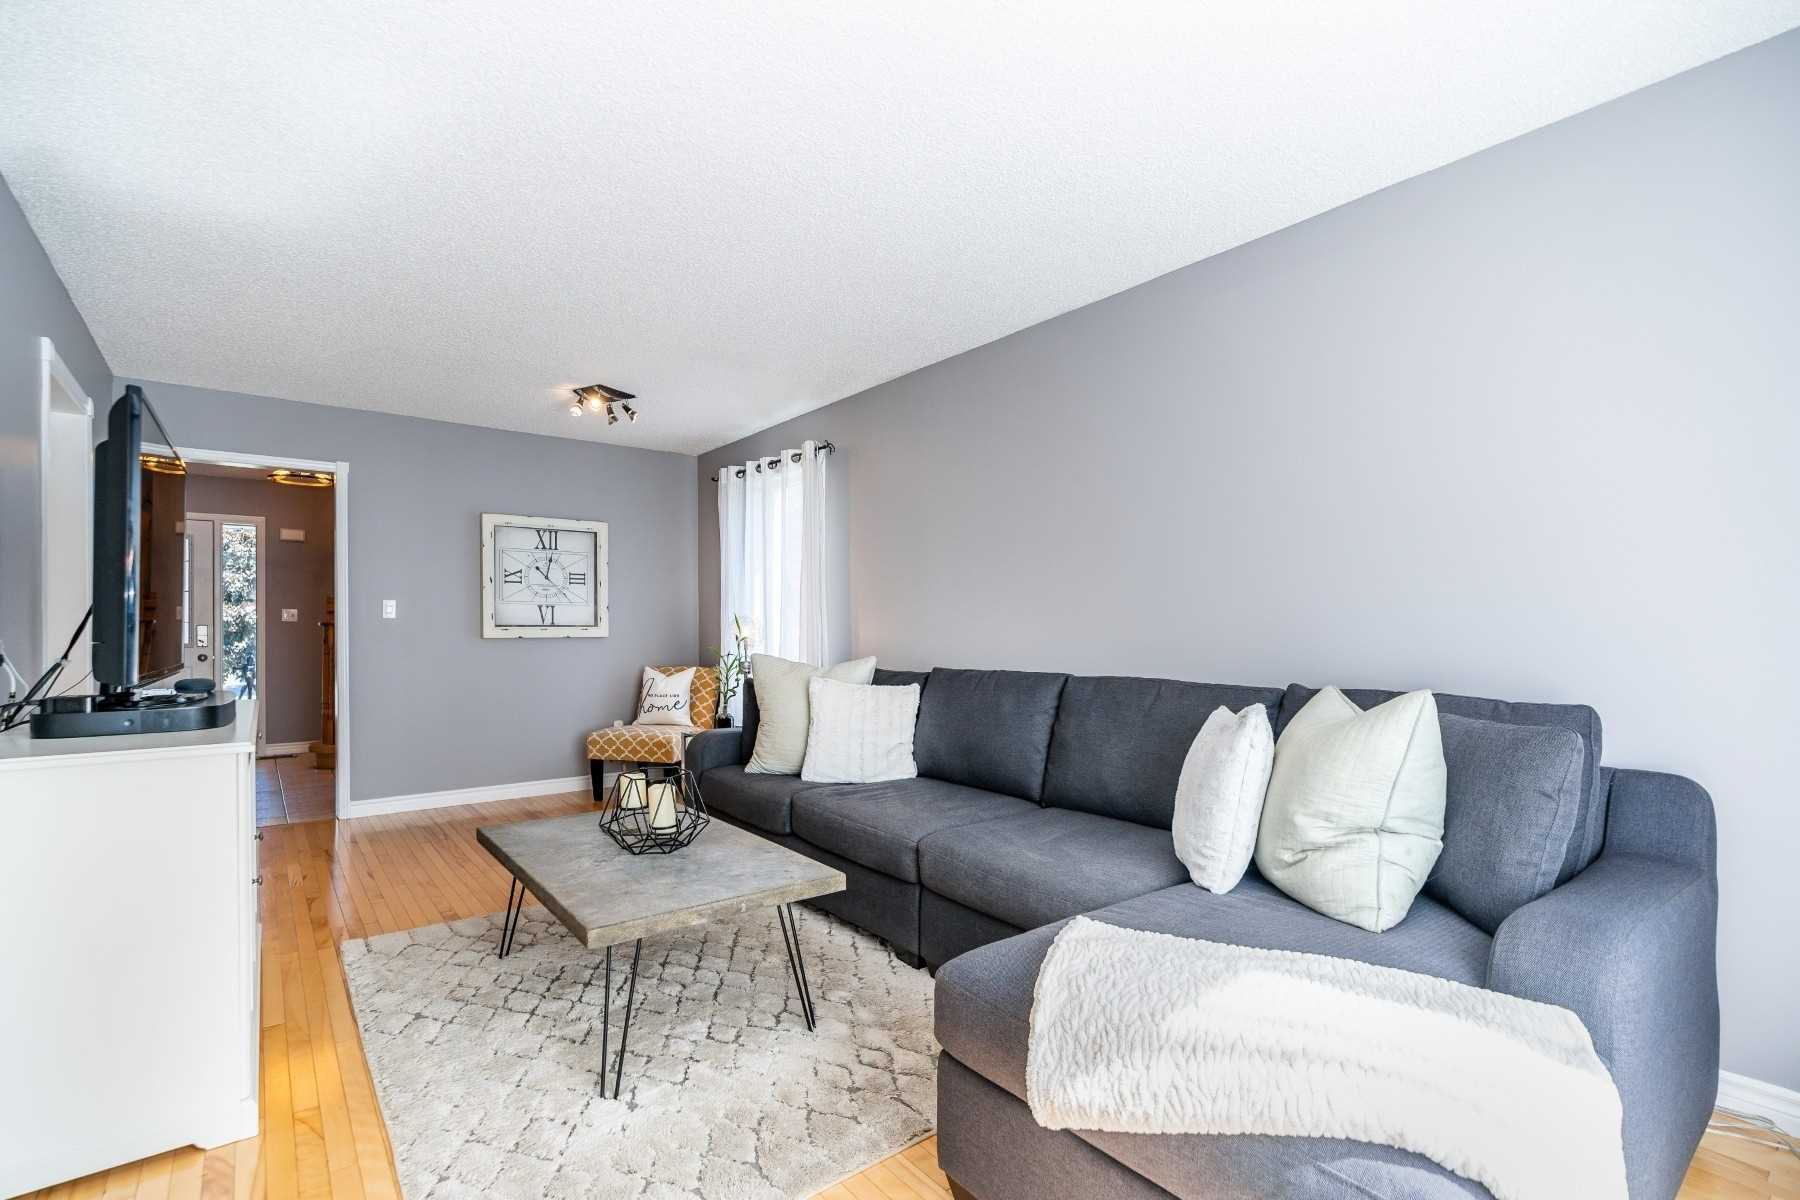 Photo 8: Photos: 1153 Snowberry Court in Oshawa: Pinecrest House (2-Storey) for sale : MLS®# E4794796